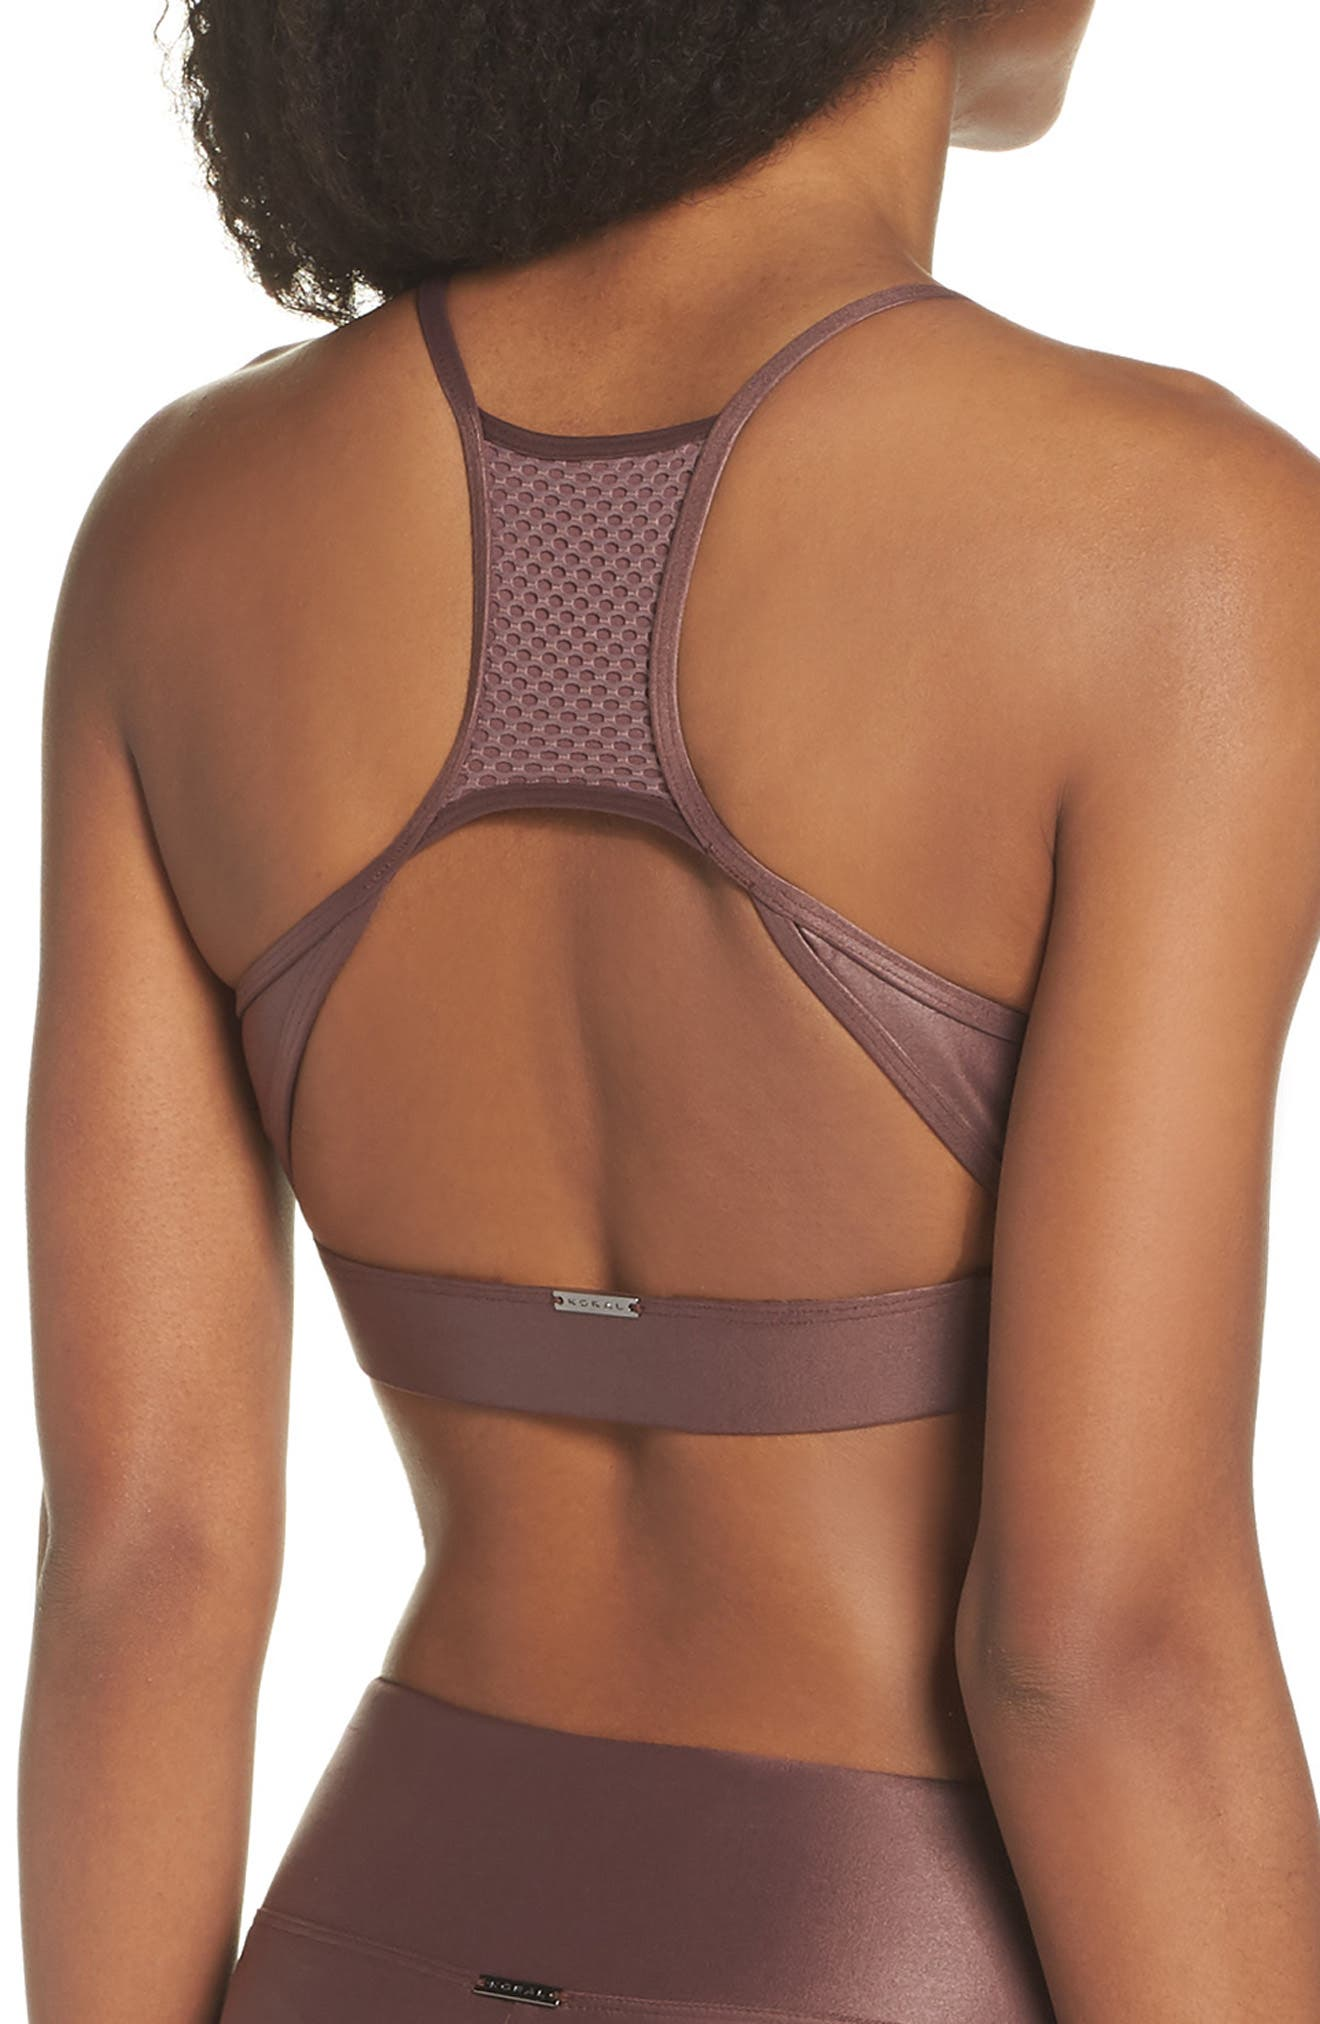 Pacifica Bra,                             Alternate thumbnail 2, color,                             530